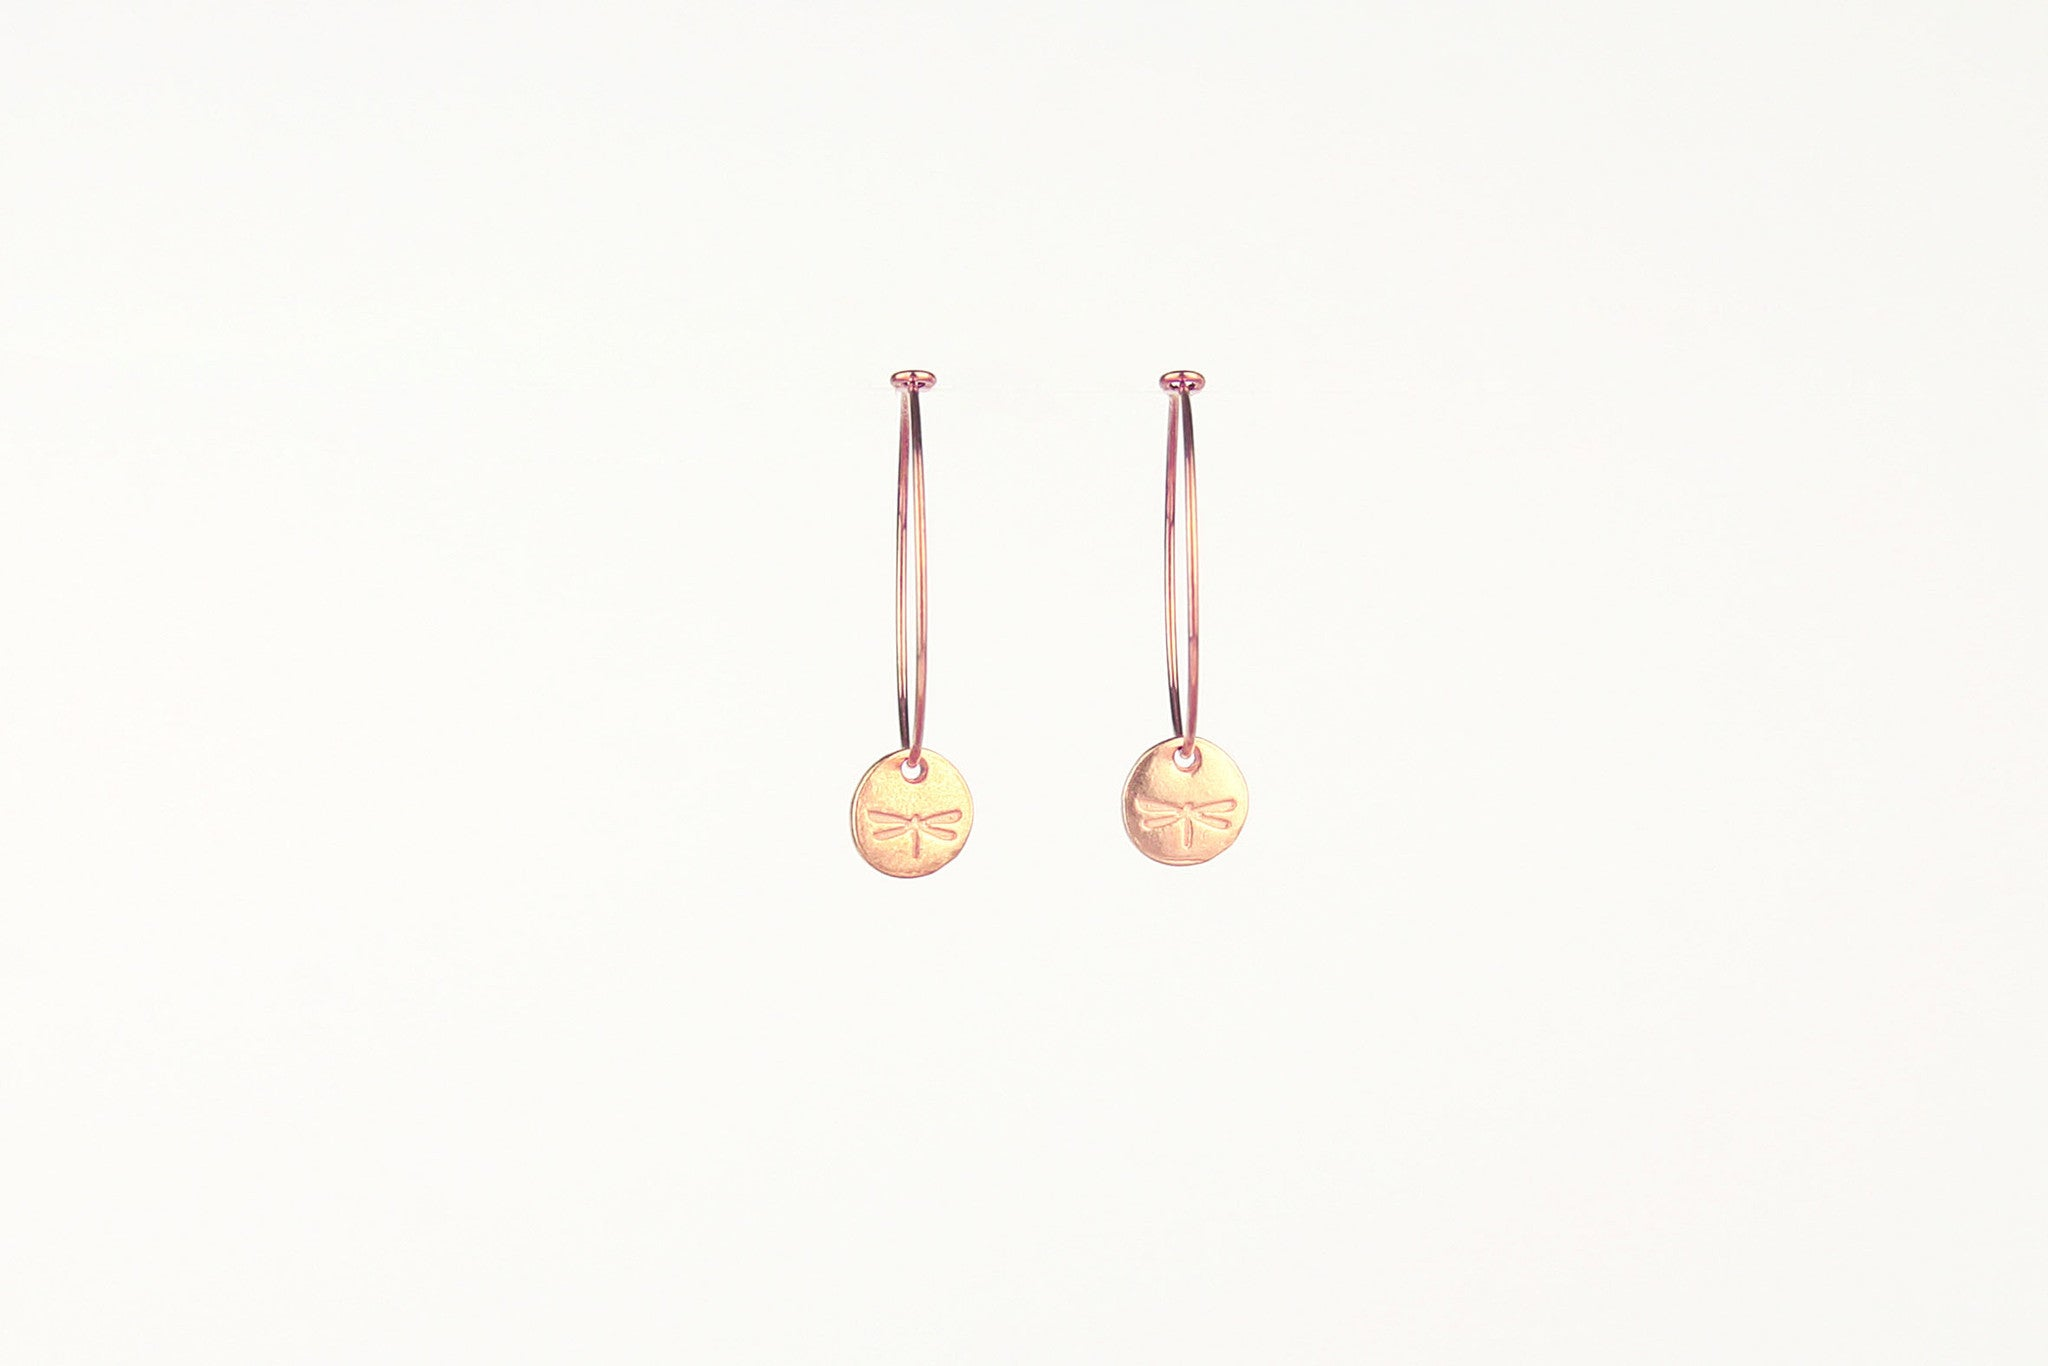 jewelberry ohrringe earrings dragonfly token hoops rose gold plated sterling silver fine jewelry handmade with love fairtrade